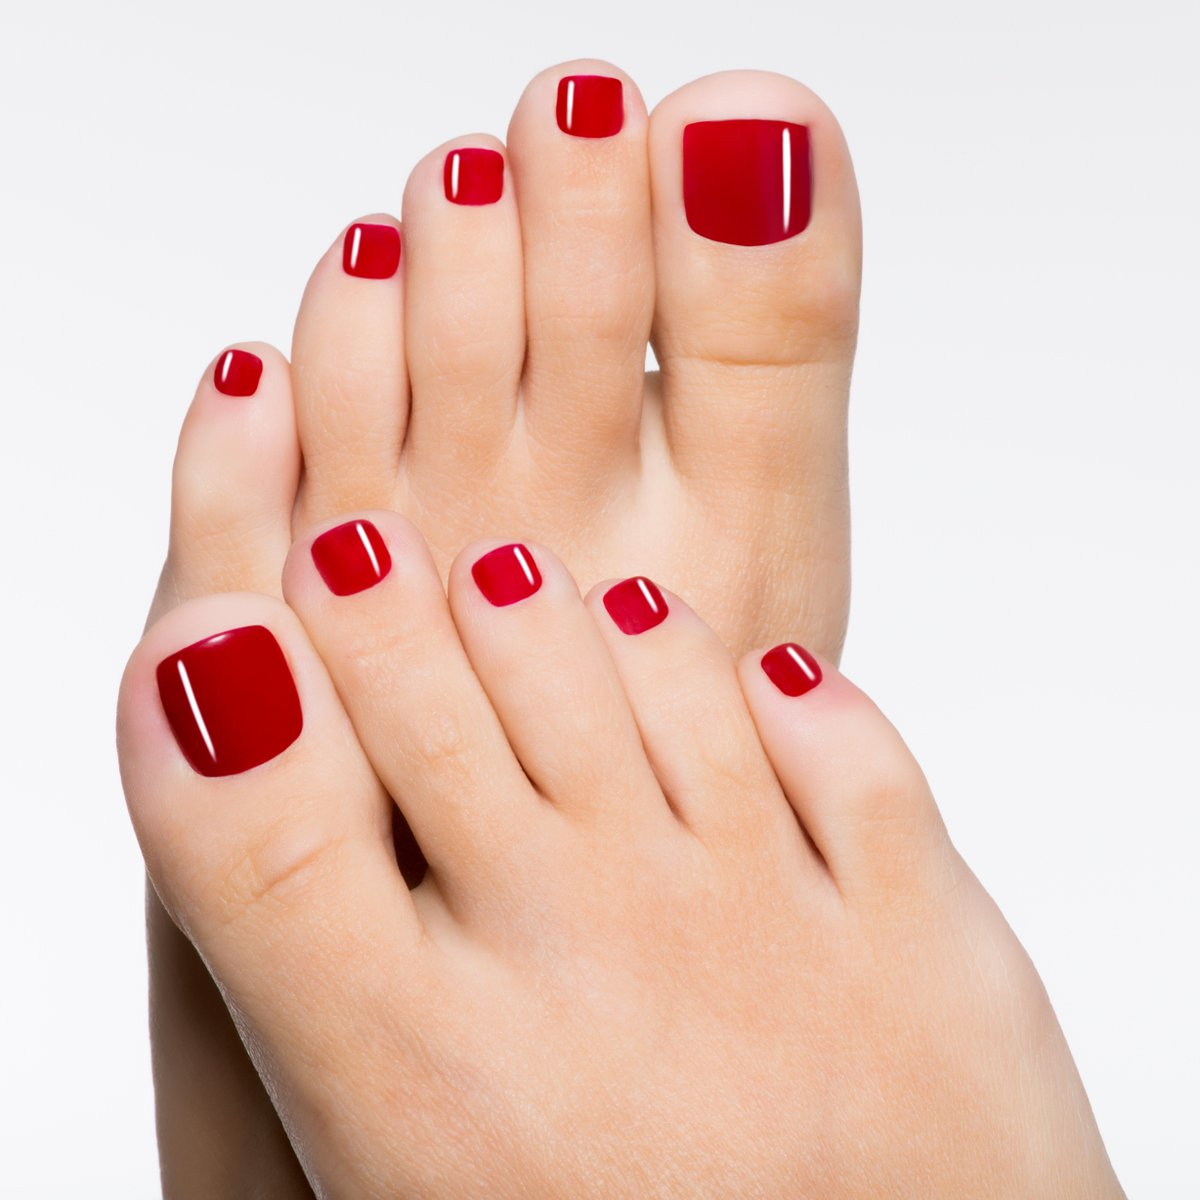 Are you a foot fetish model? Get featured 8GqC8A1hbT